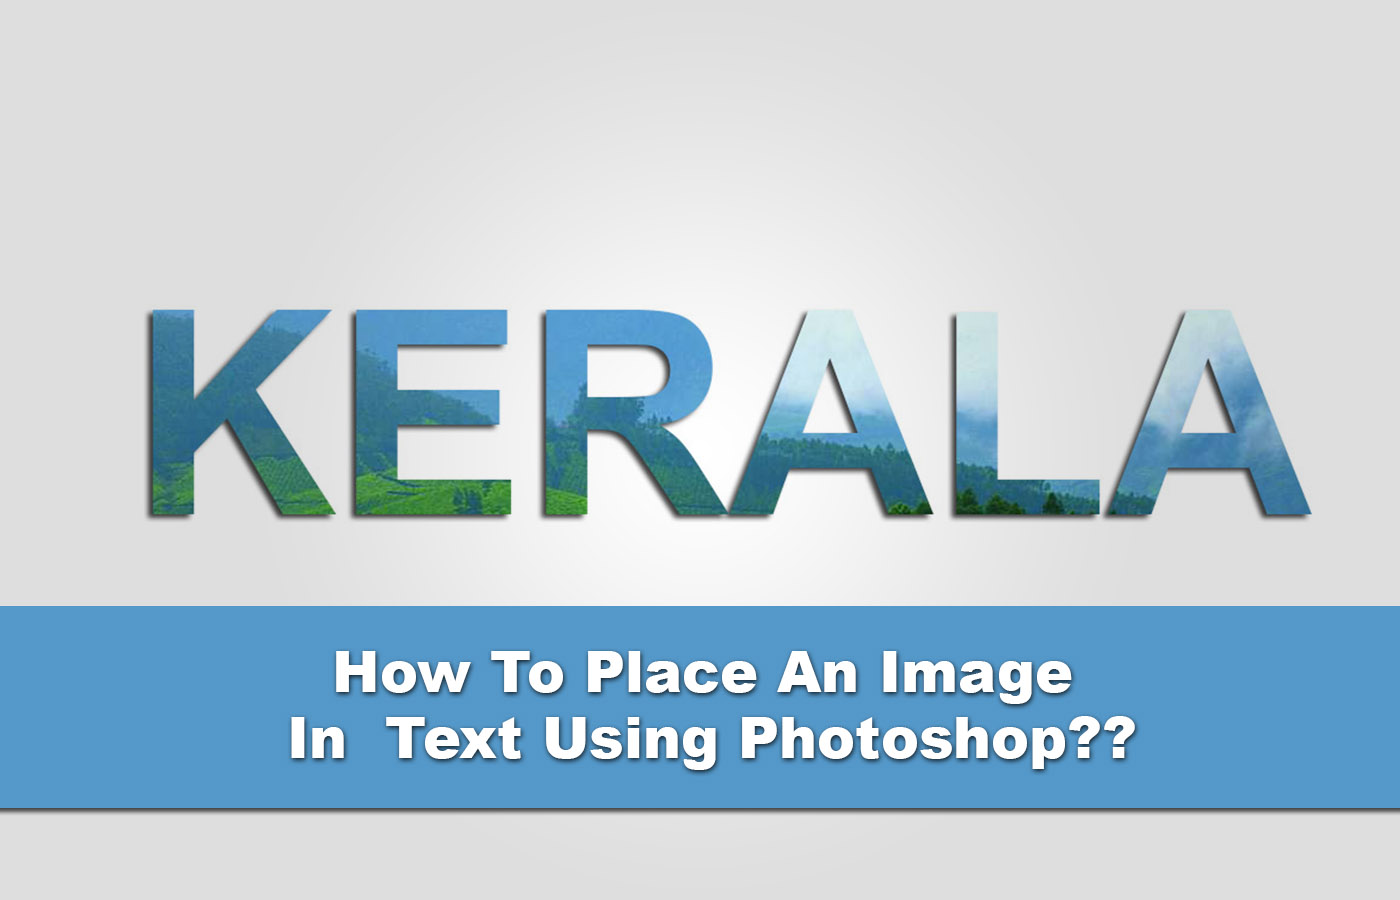 How To Place An Image In Text Using Photoshop?